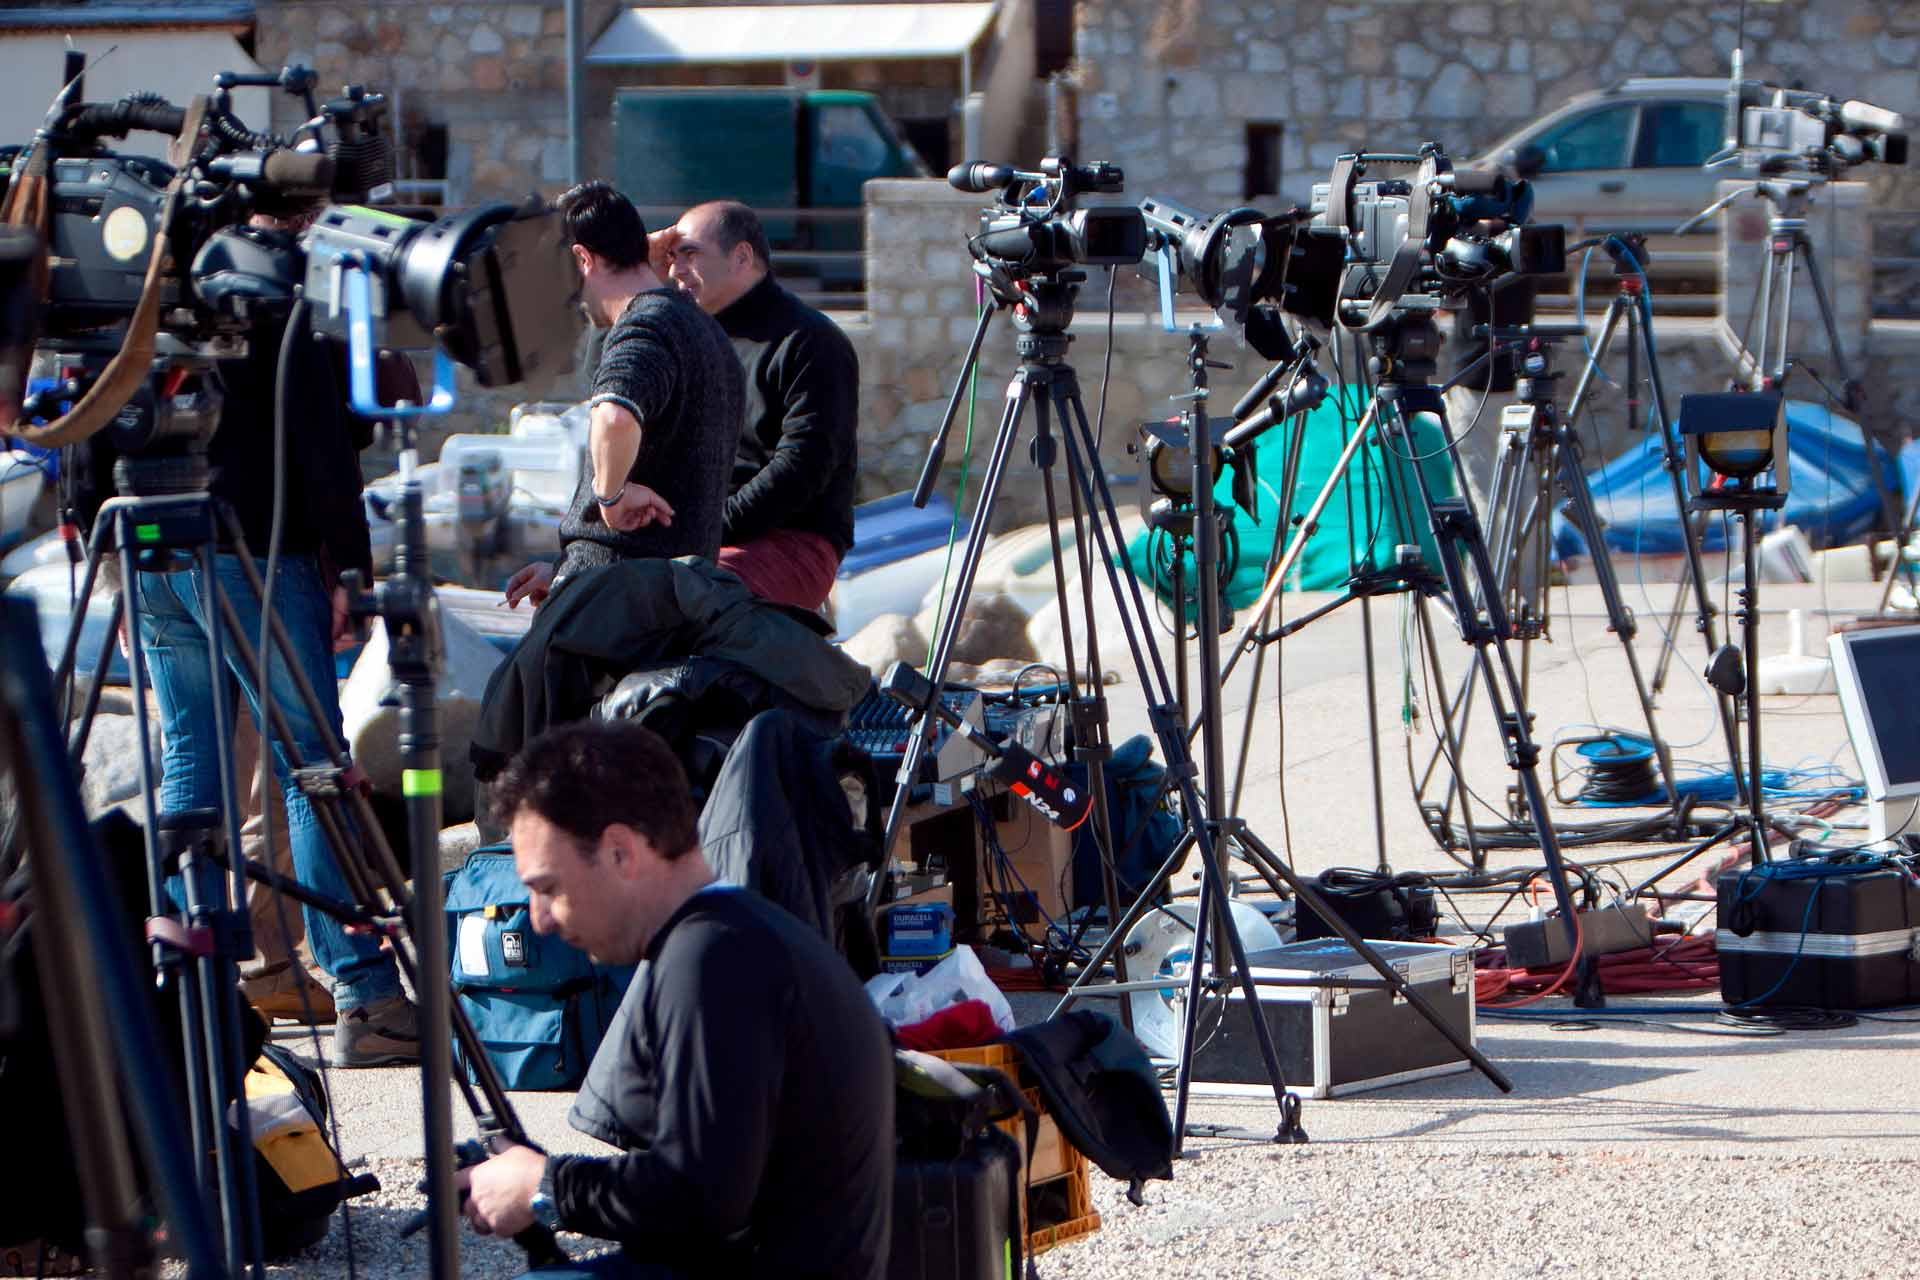 The media looting began immediately and the inhabitants of the small island of Giglio had to make room not only for the castaways, but also for journalists and onlookers.